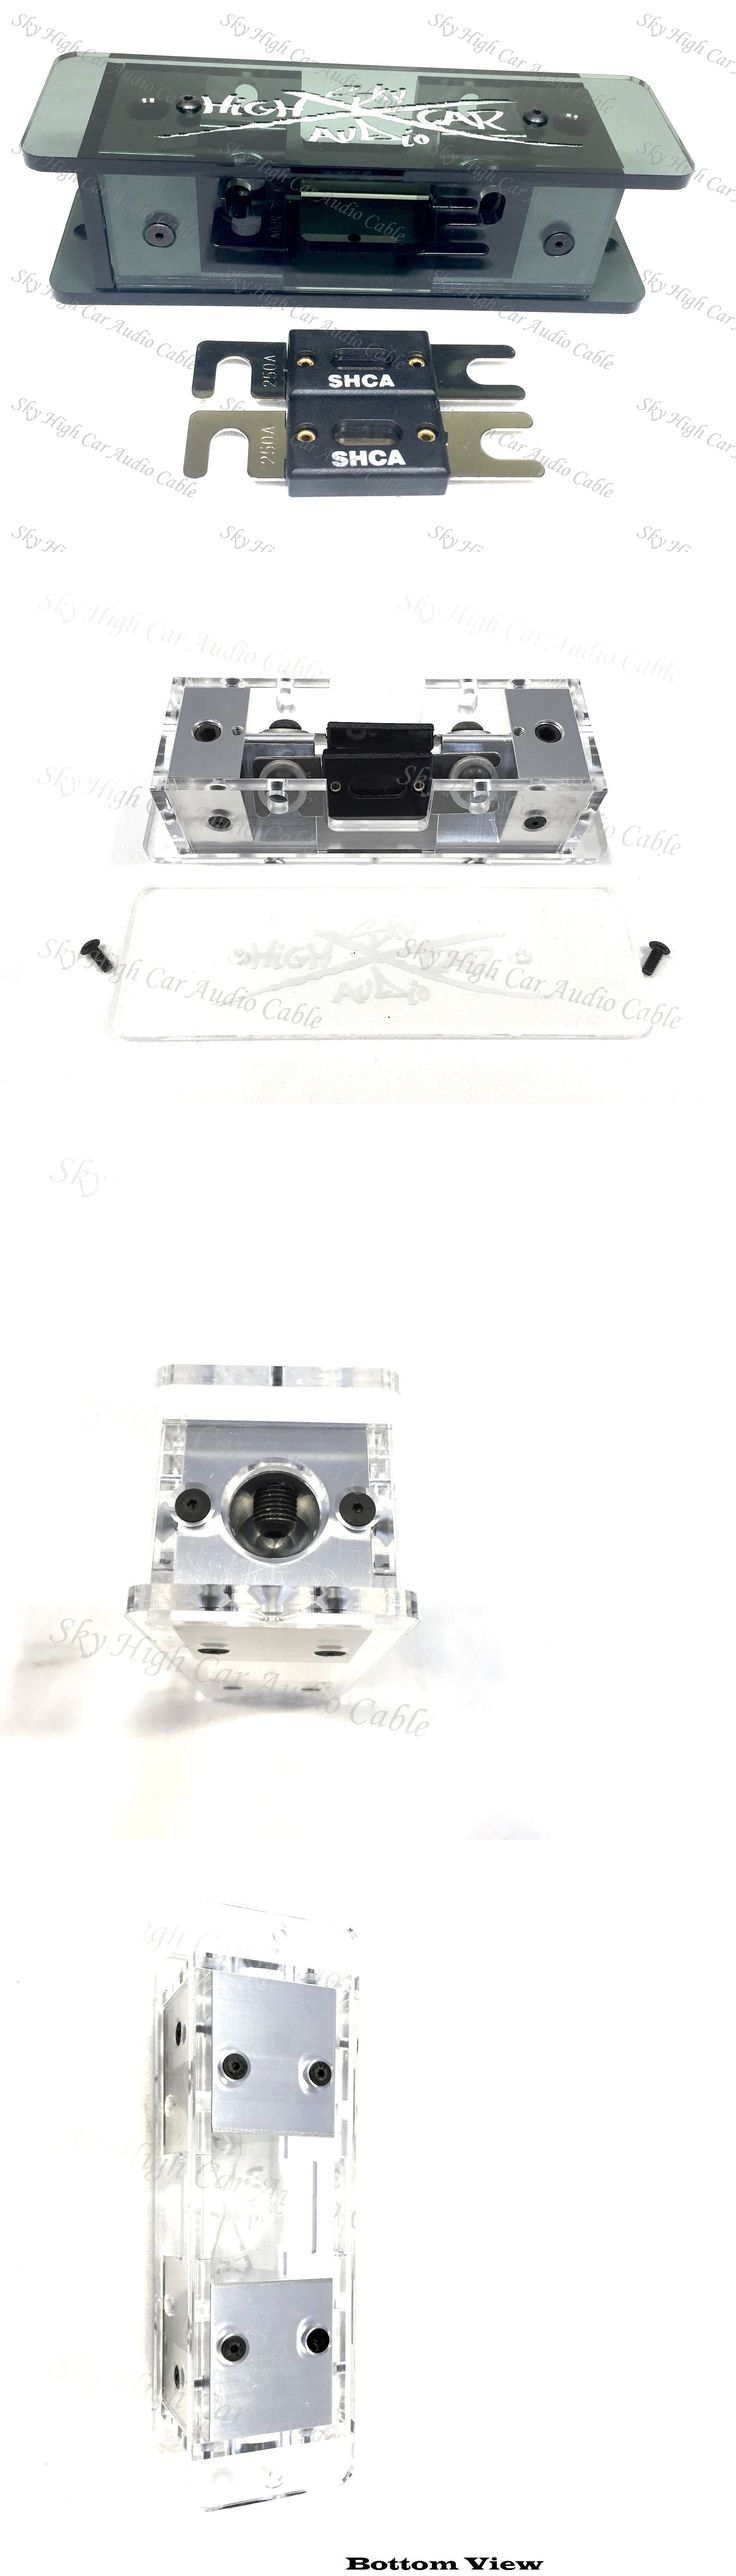 Connectors and Terminals: Sky High Smoked 2/0 Dual Anl Plexiglass Fuse Holder W/ (2) 250 Amp Anl Fuses BUY IT NOW ONLY: $59.99